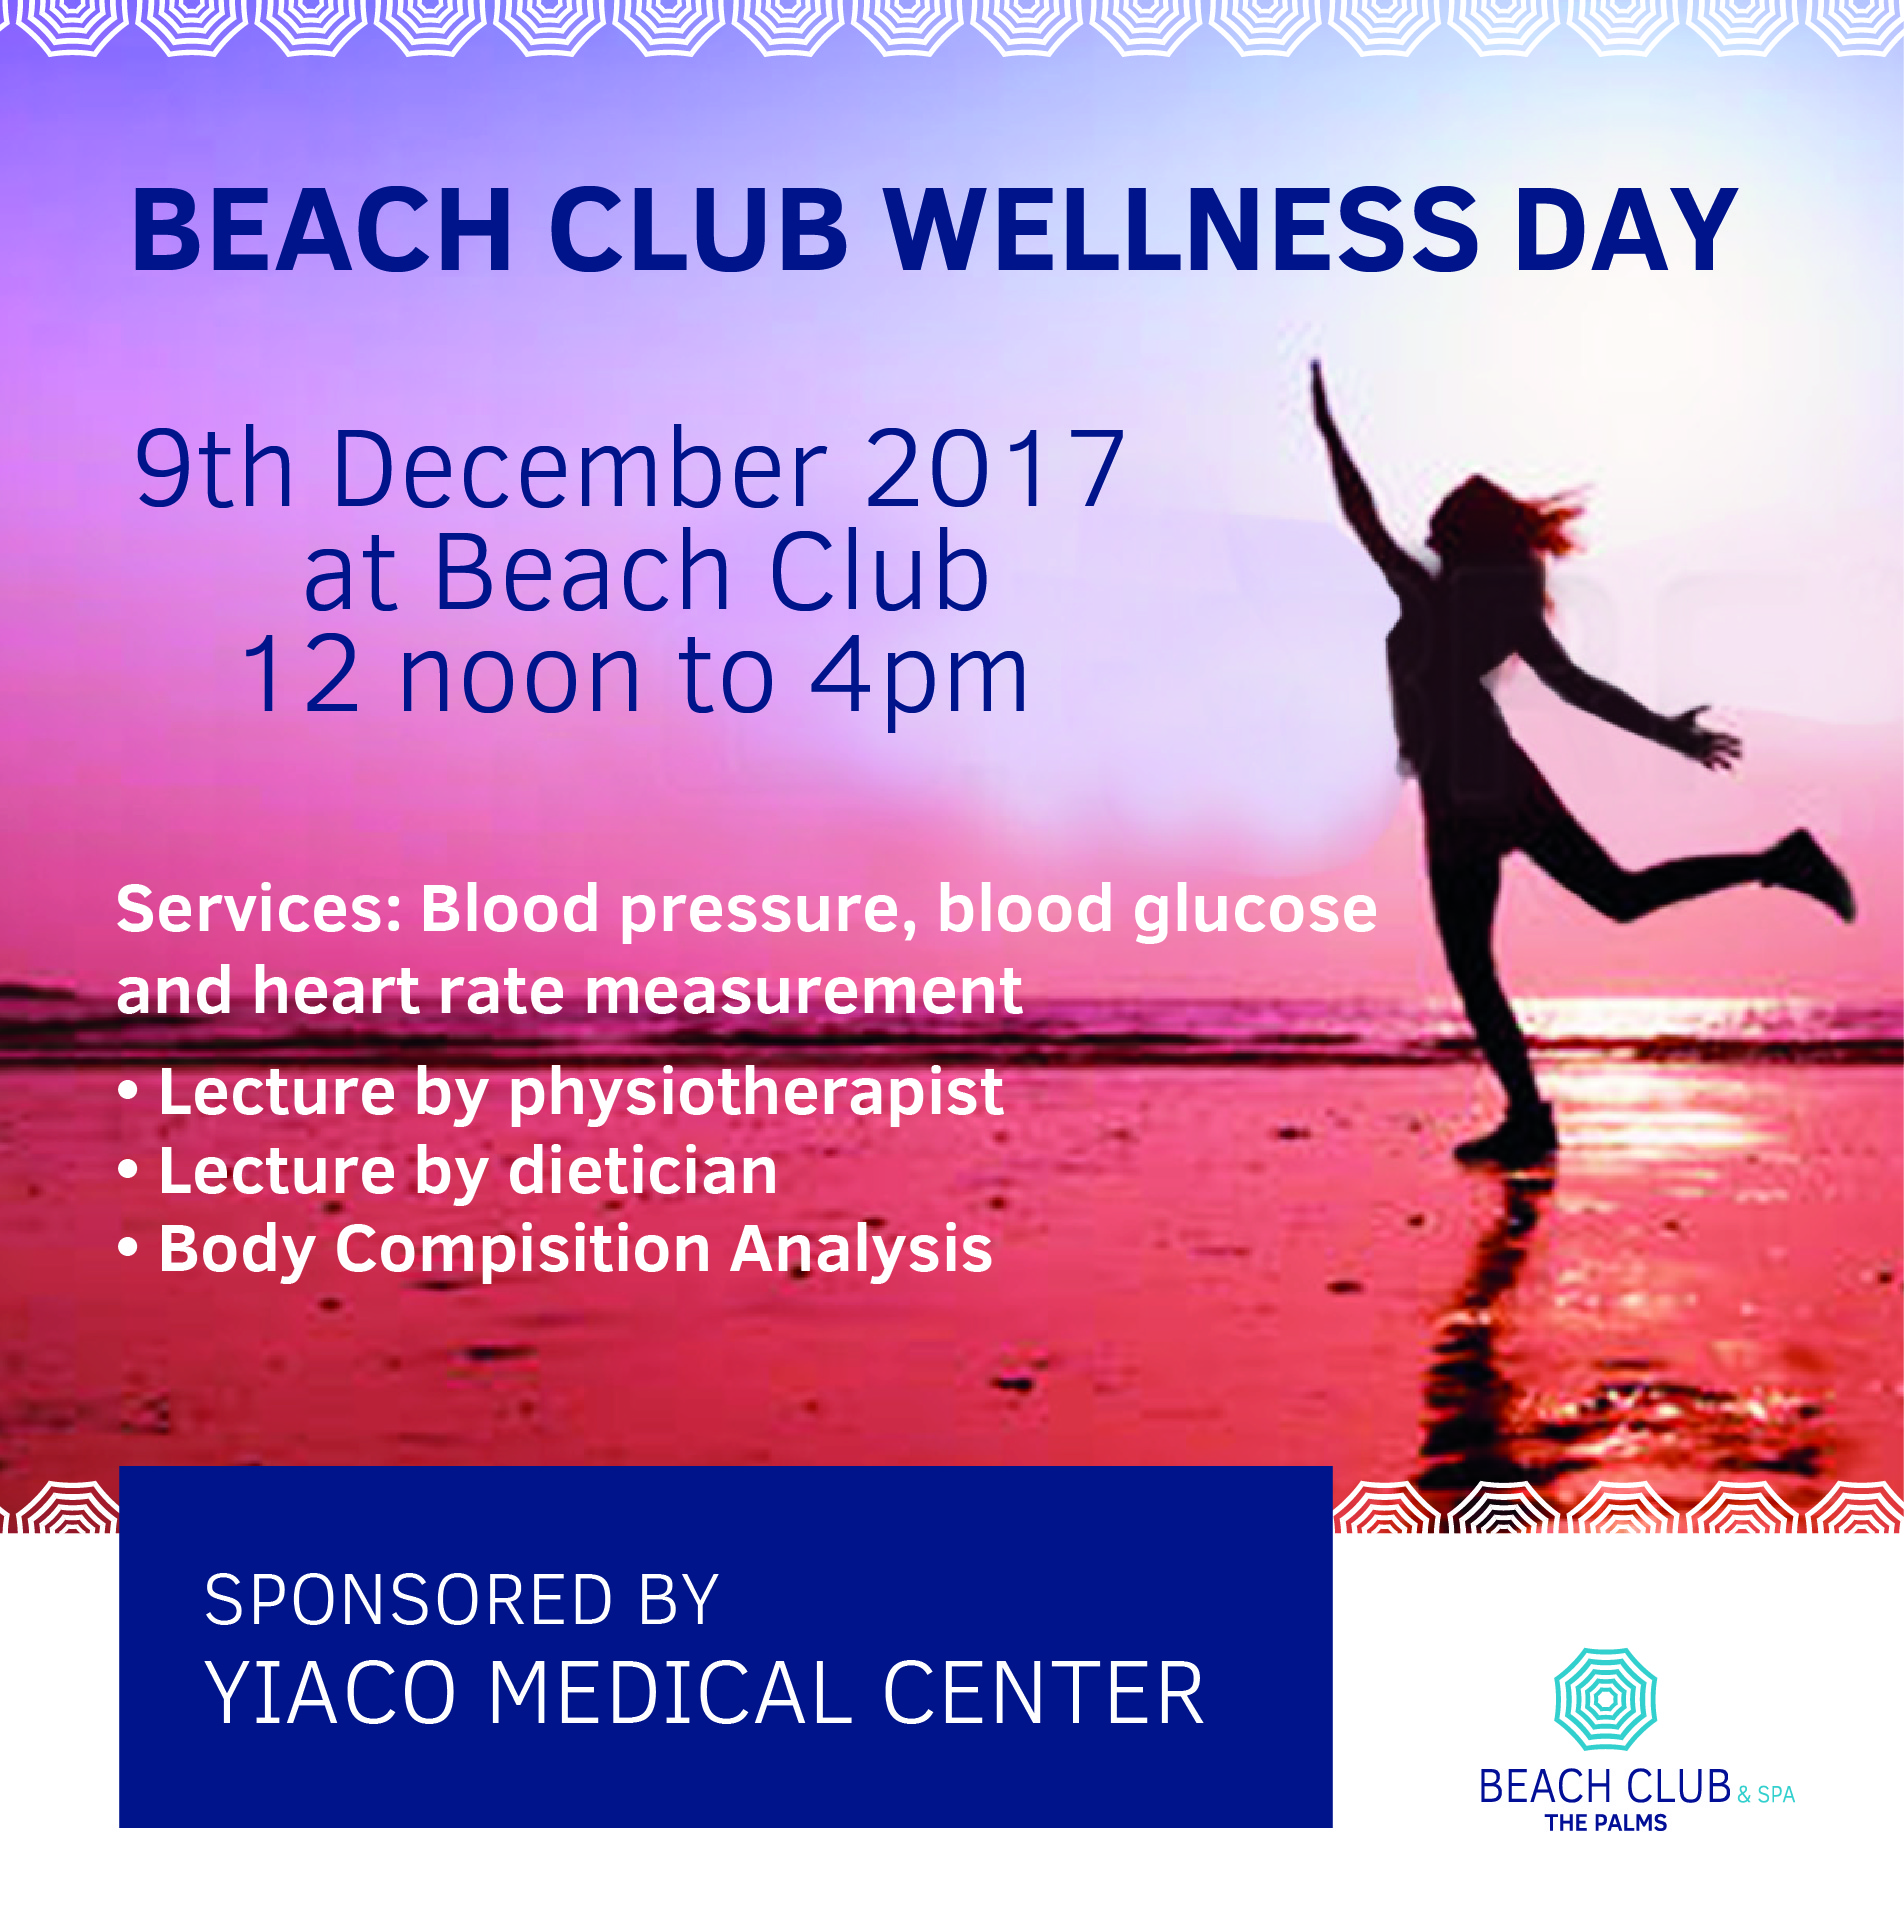 BC_Wellness Day-01